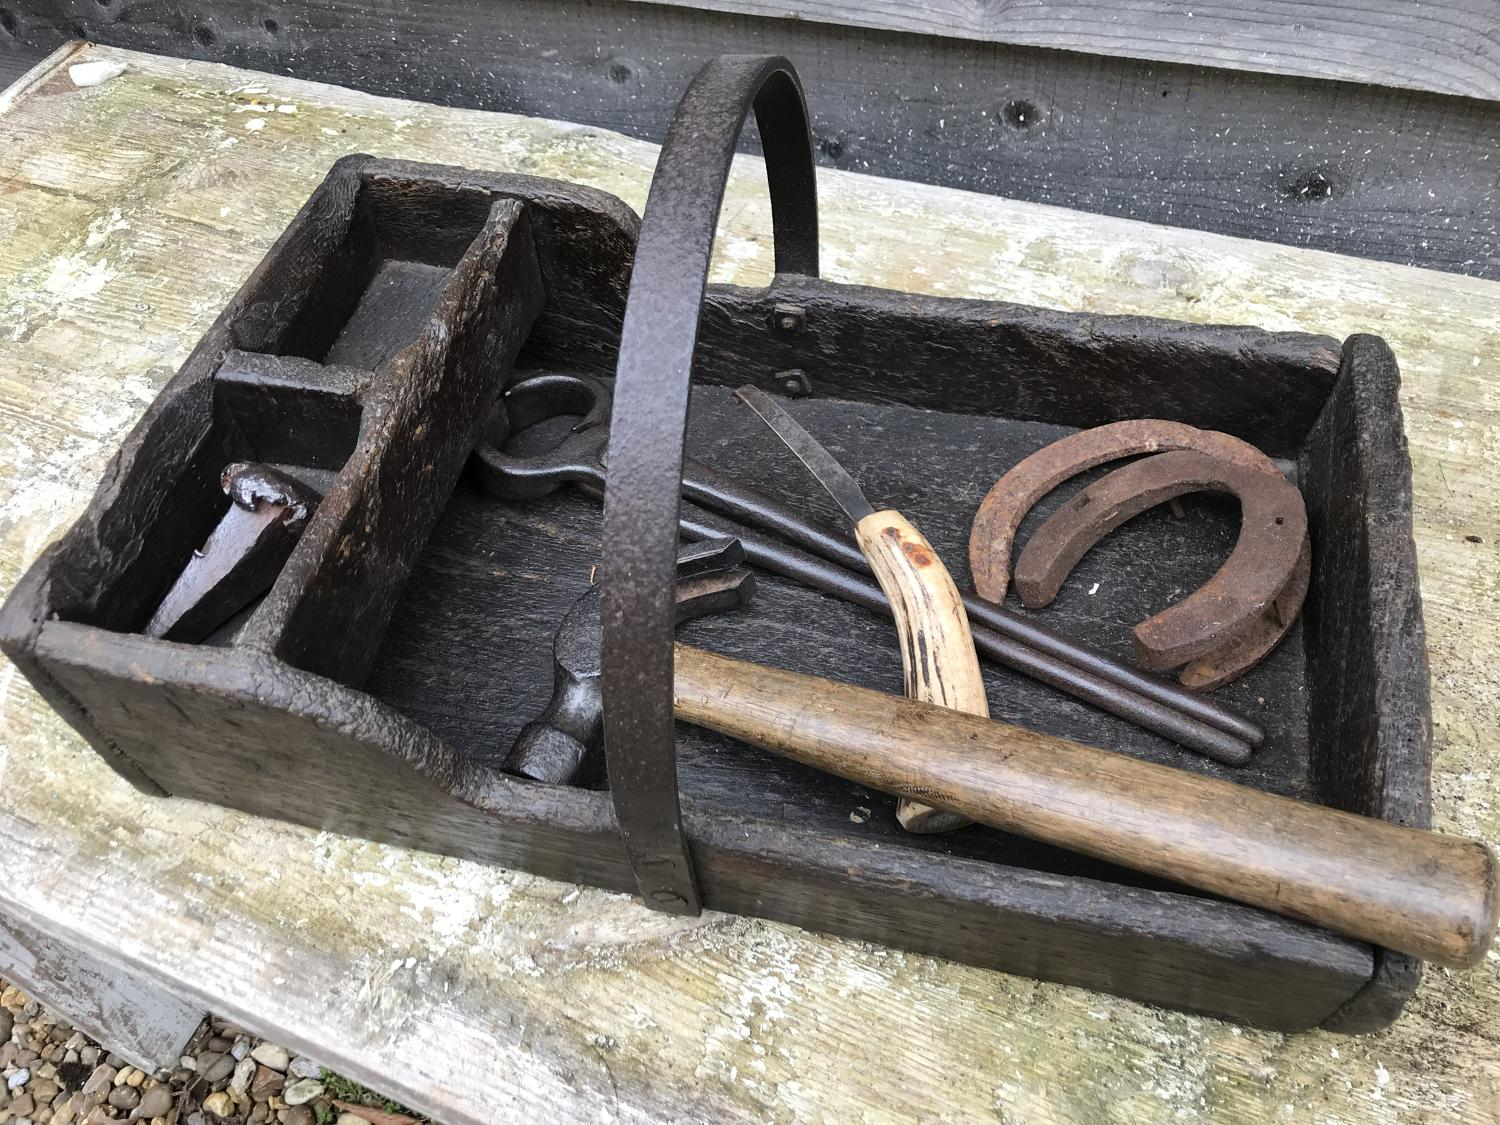 19th Cent Farrier's Box with tools